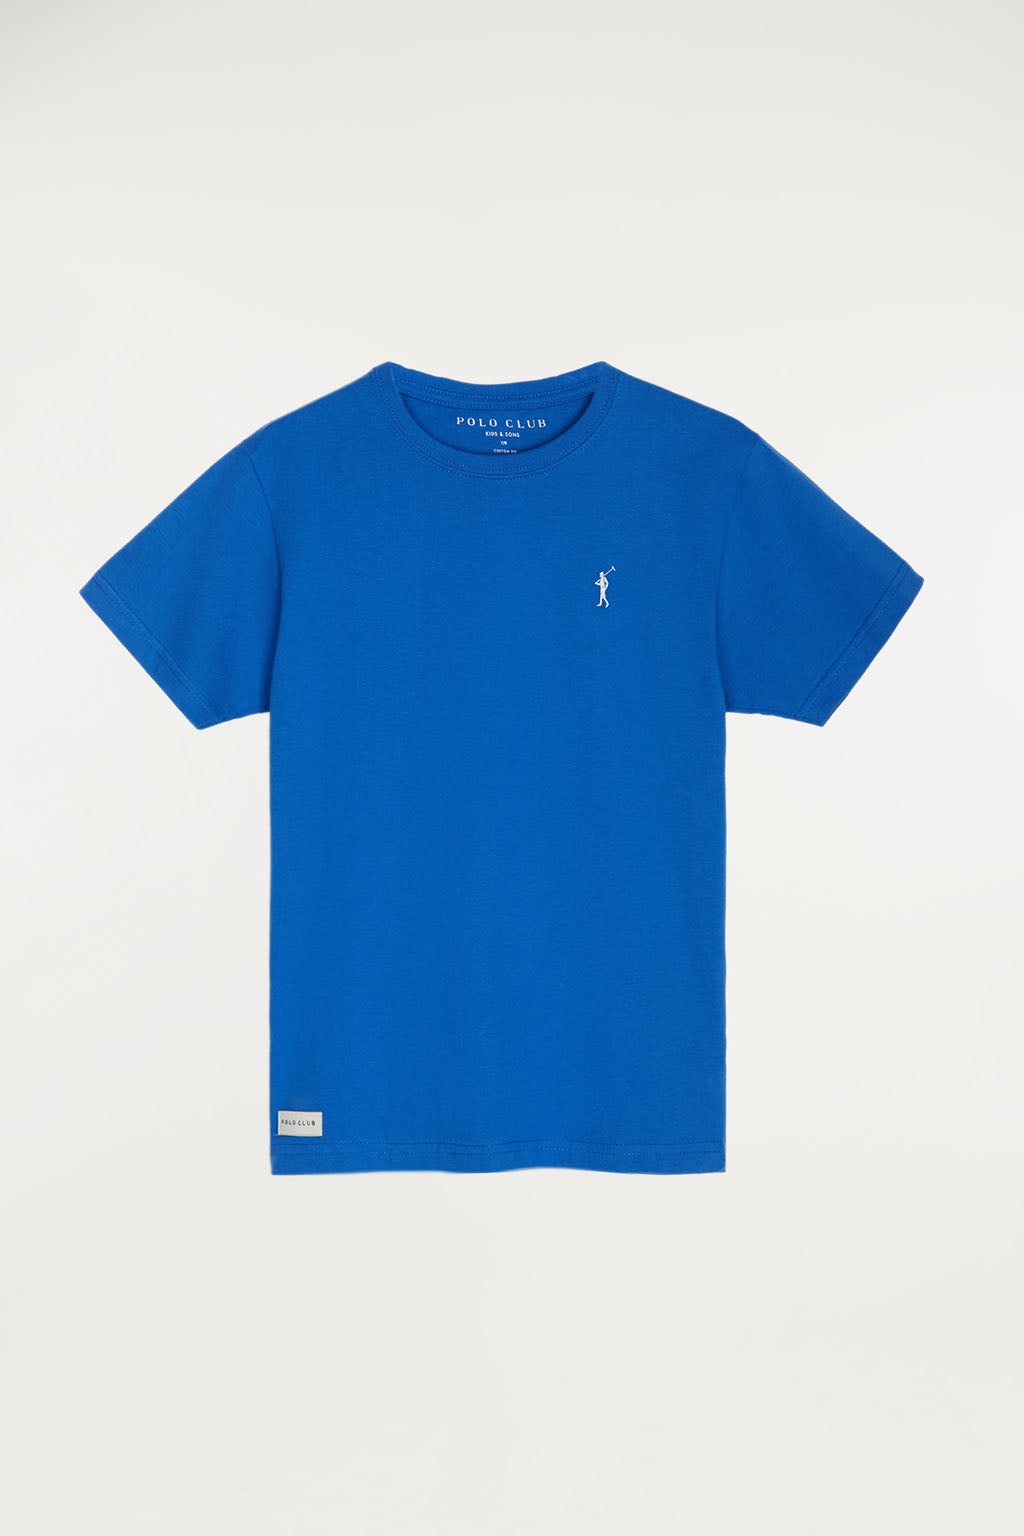 Royal blue tee with small embroidered logo